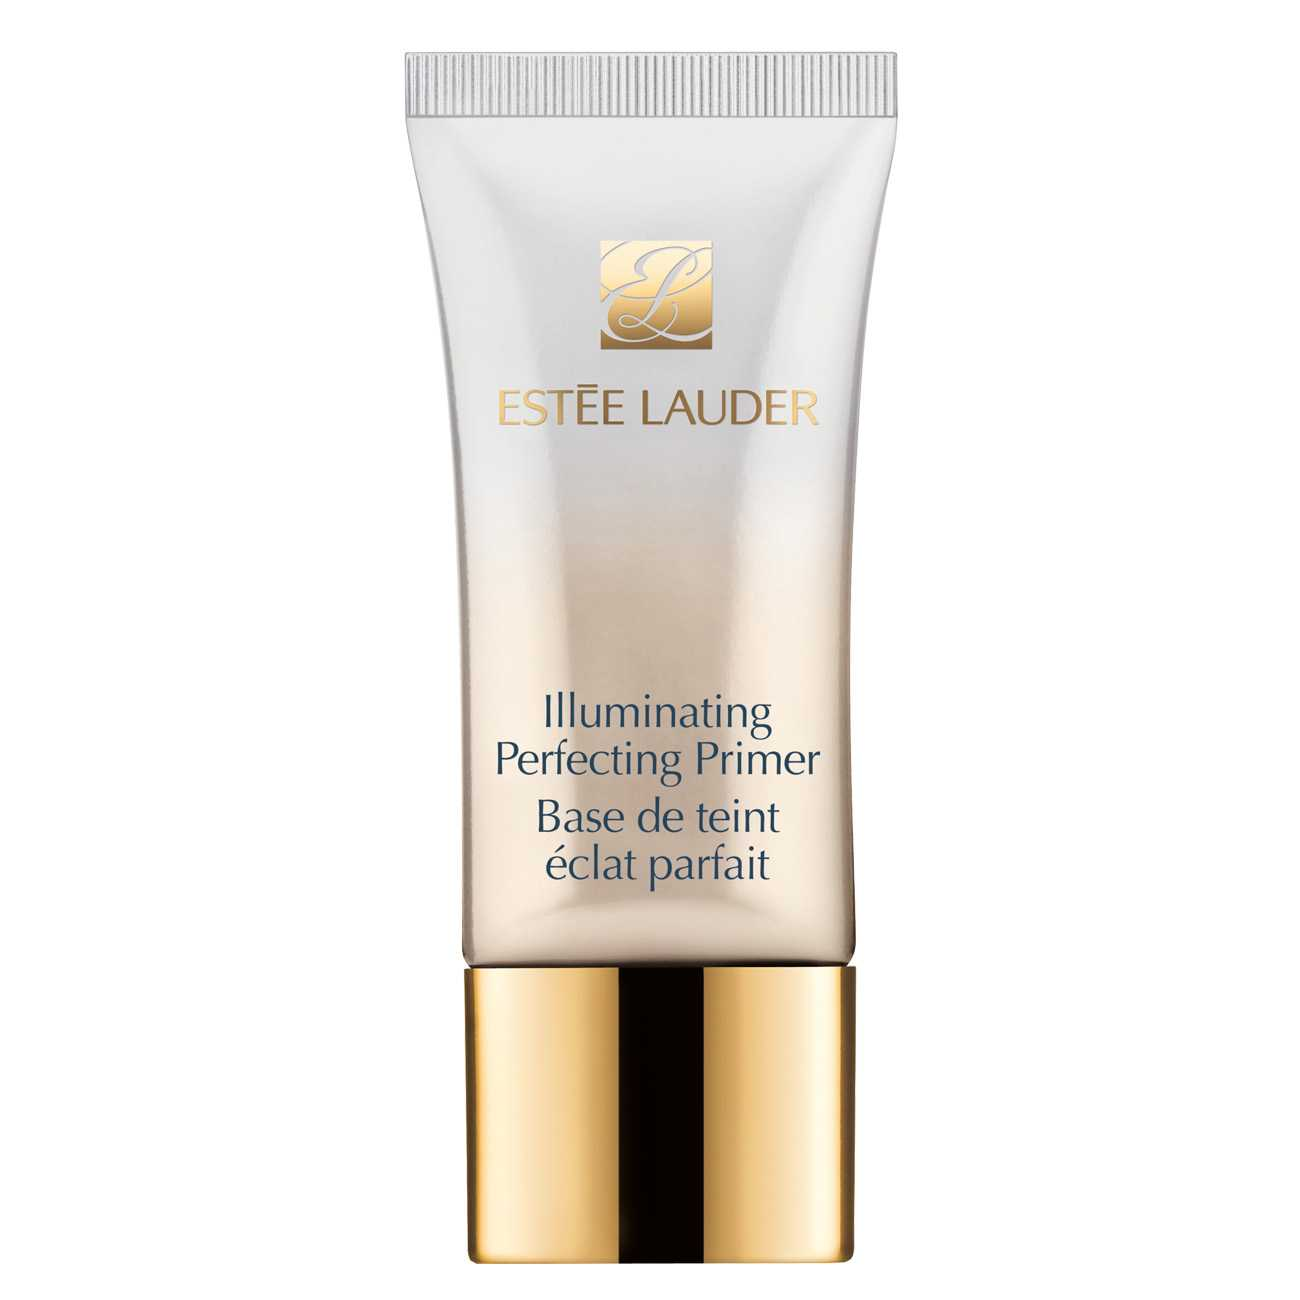 Illuminating Perfecting Primer 30 Ml Estée Lauder imagine 2021 bestvalue.eu